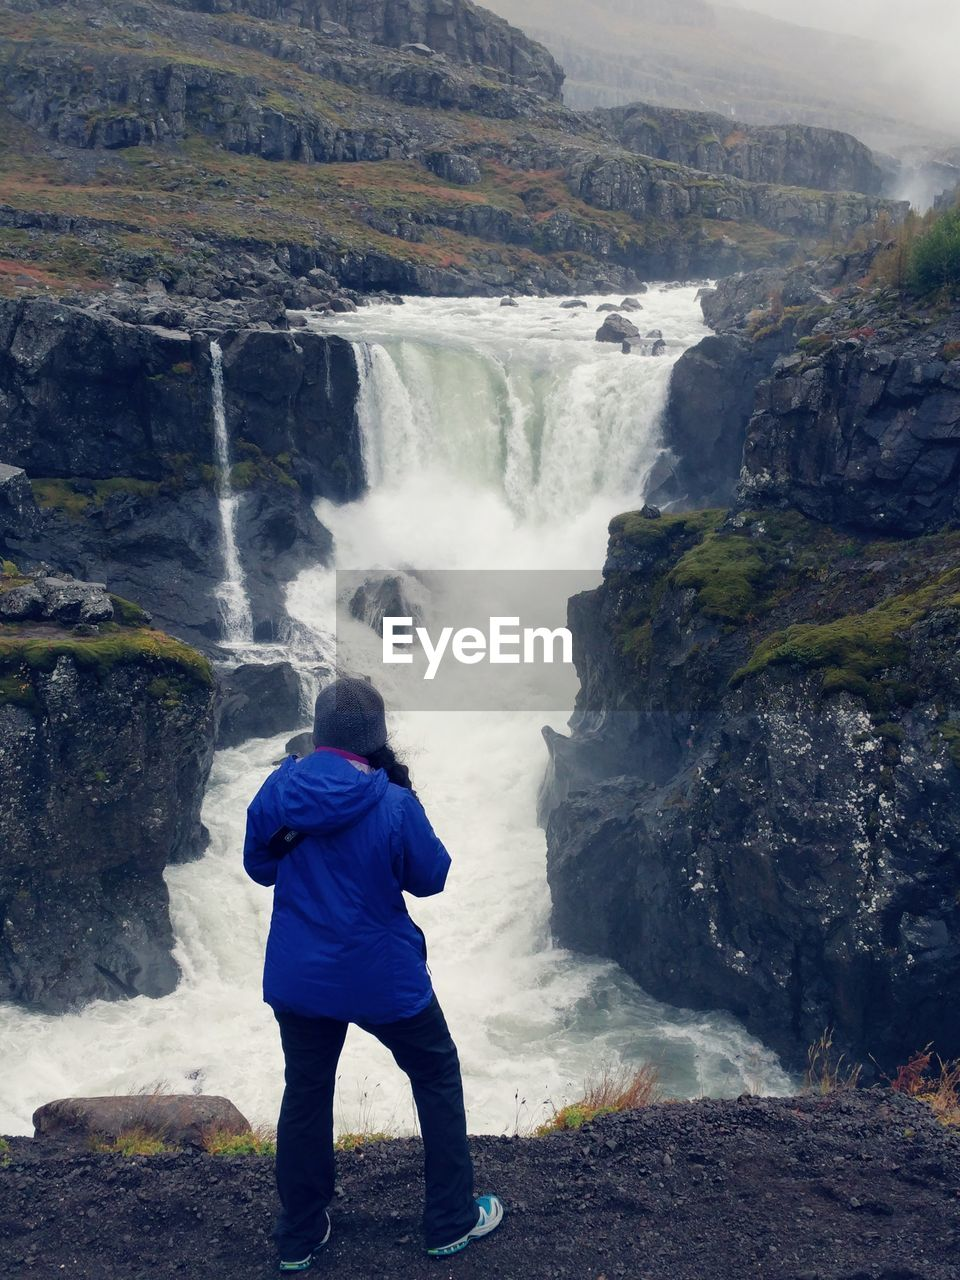 rear view, real people, waterfall, one person, water, scenics - nature, beauty in nature, leisure activity, long exposure, rock, lifestyles, motion, standing, rock - object, solid, nature, flowing water, land, outdoors, power in nature, looking at view